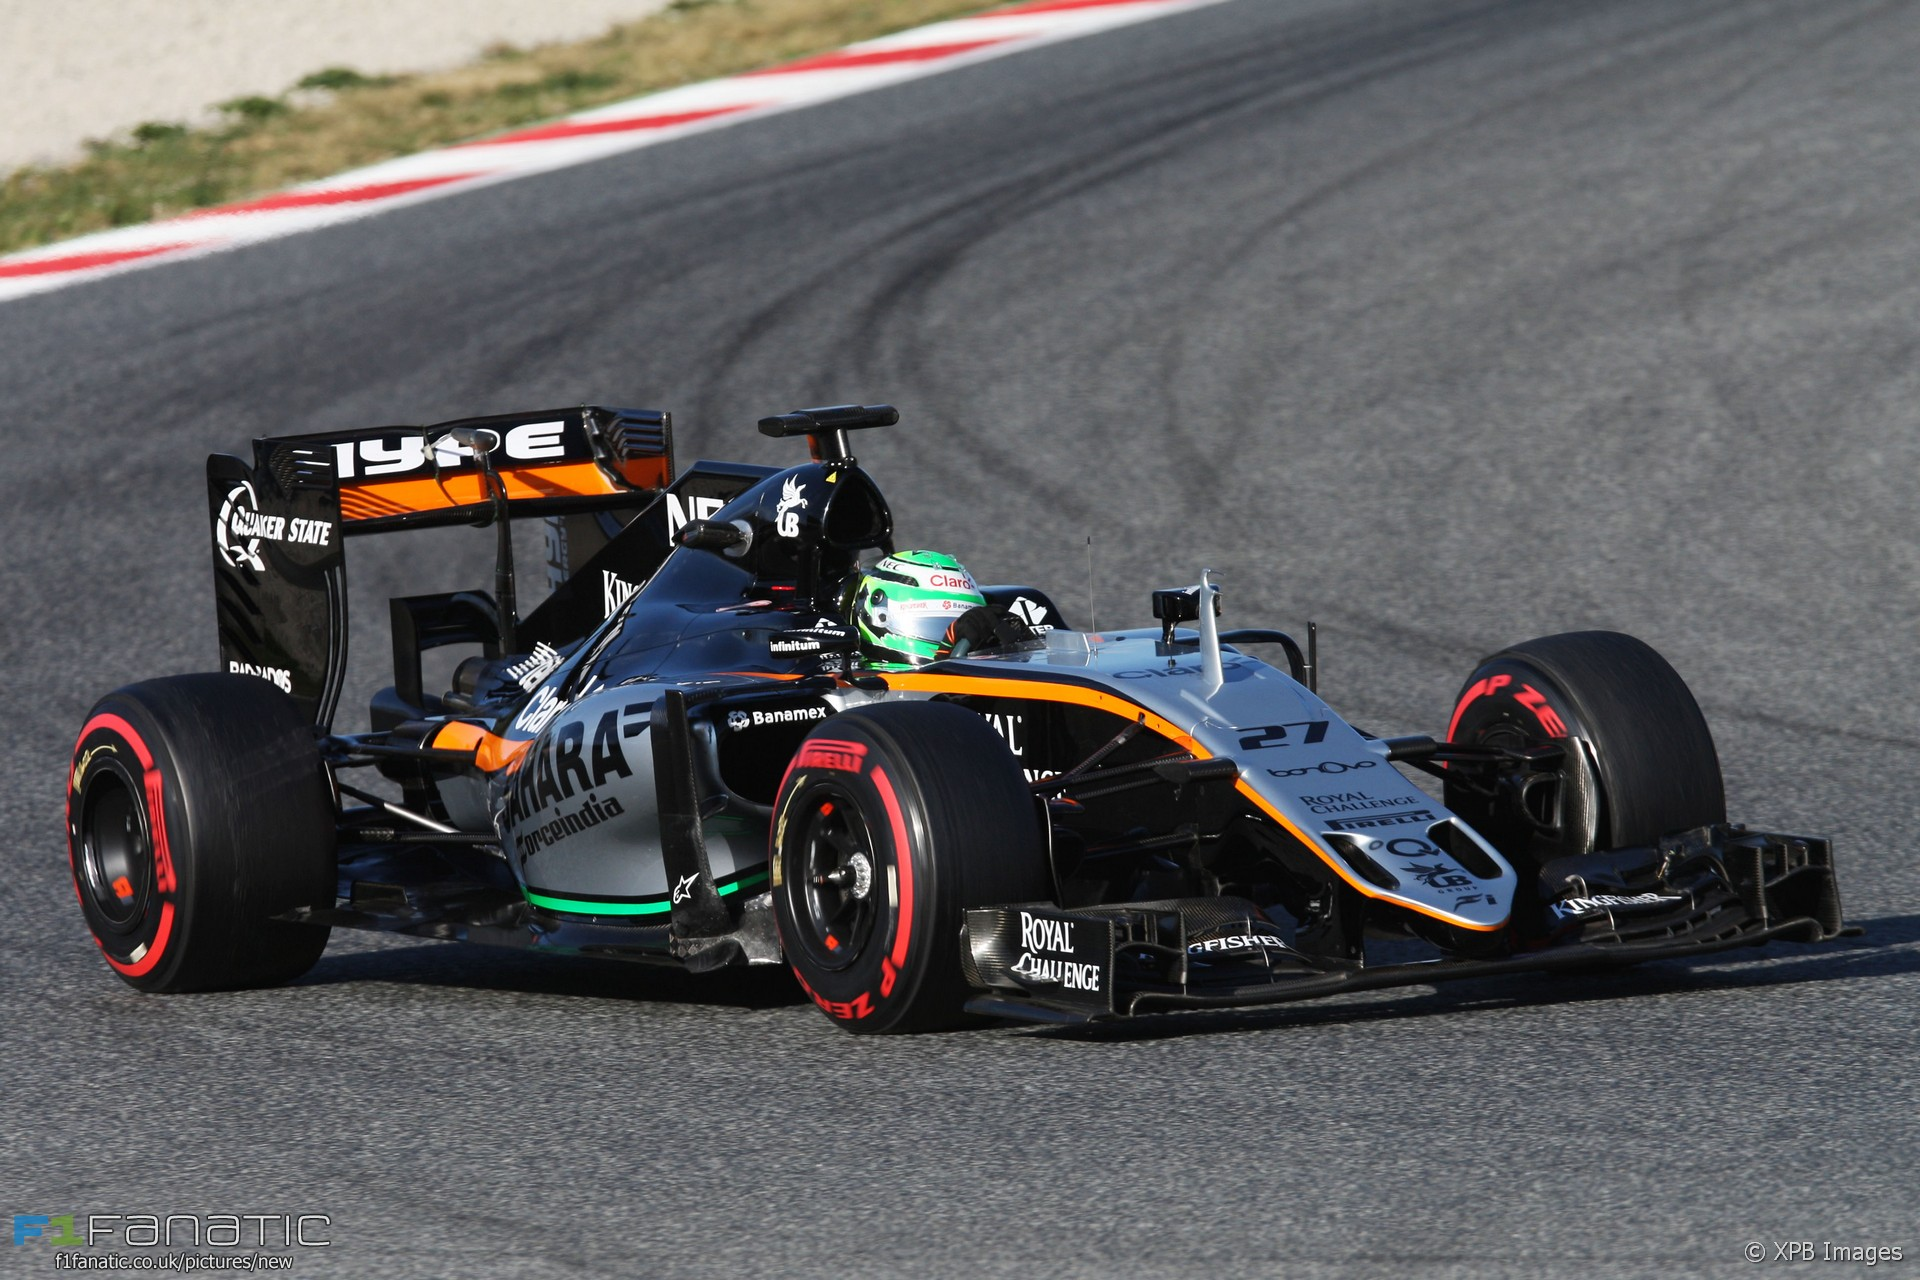 Nico Hulkenberg, Force India, Circuit de Catalunya, 2016